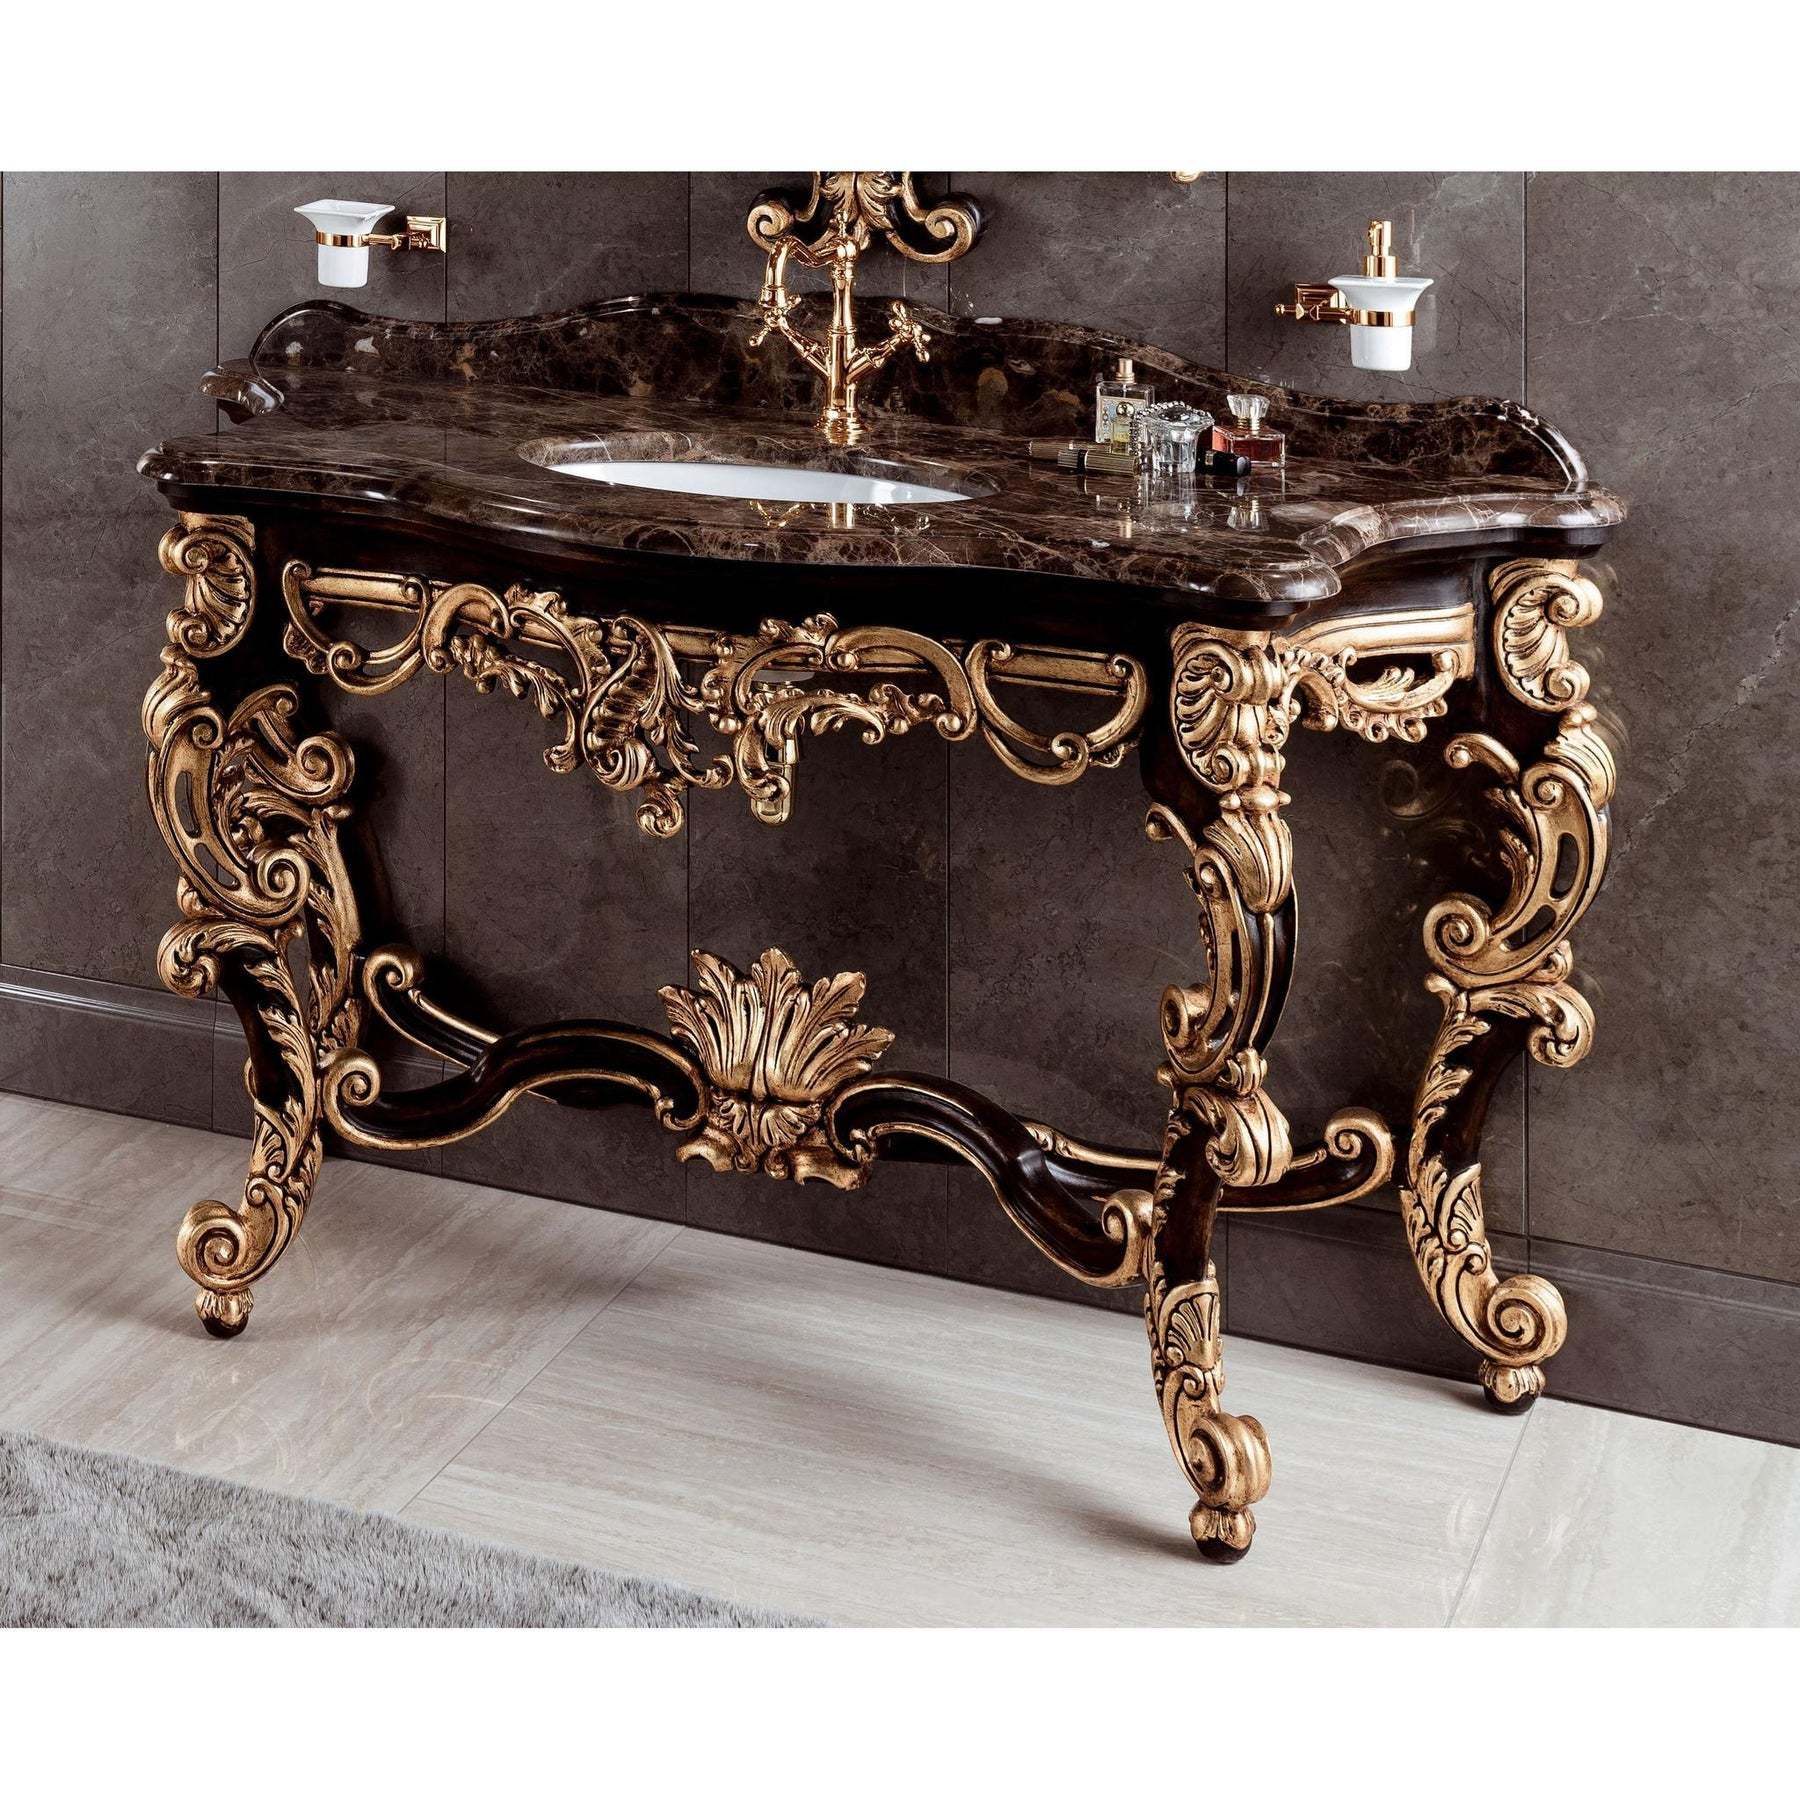 Gm Luxury Gondola 61 4 Bathroom Vanity Console Cabinet Decorated Wood Gold Leaf Gm Luxury Bath Collection Bathroom Vanities And Sink Consoles 60 To 64 Inches Above 15000 00 Ceramic Floor Standing Gm Luxury